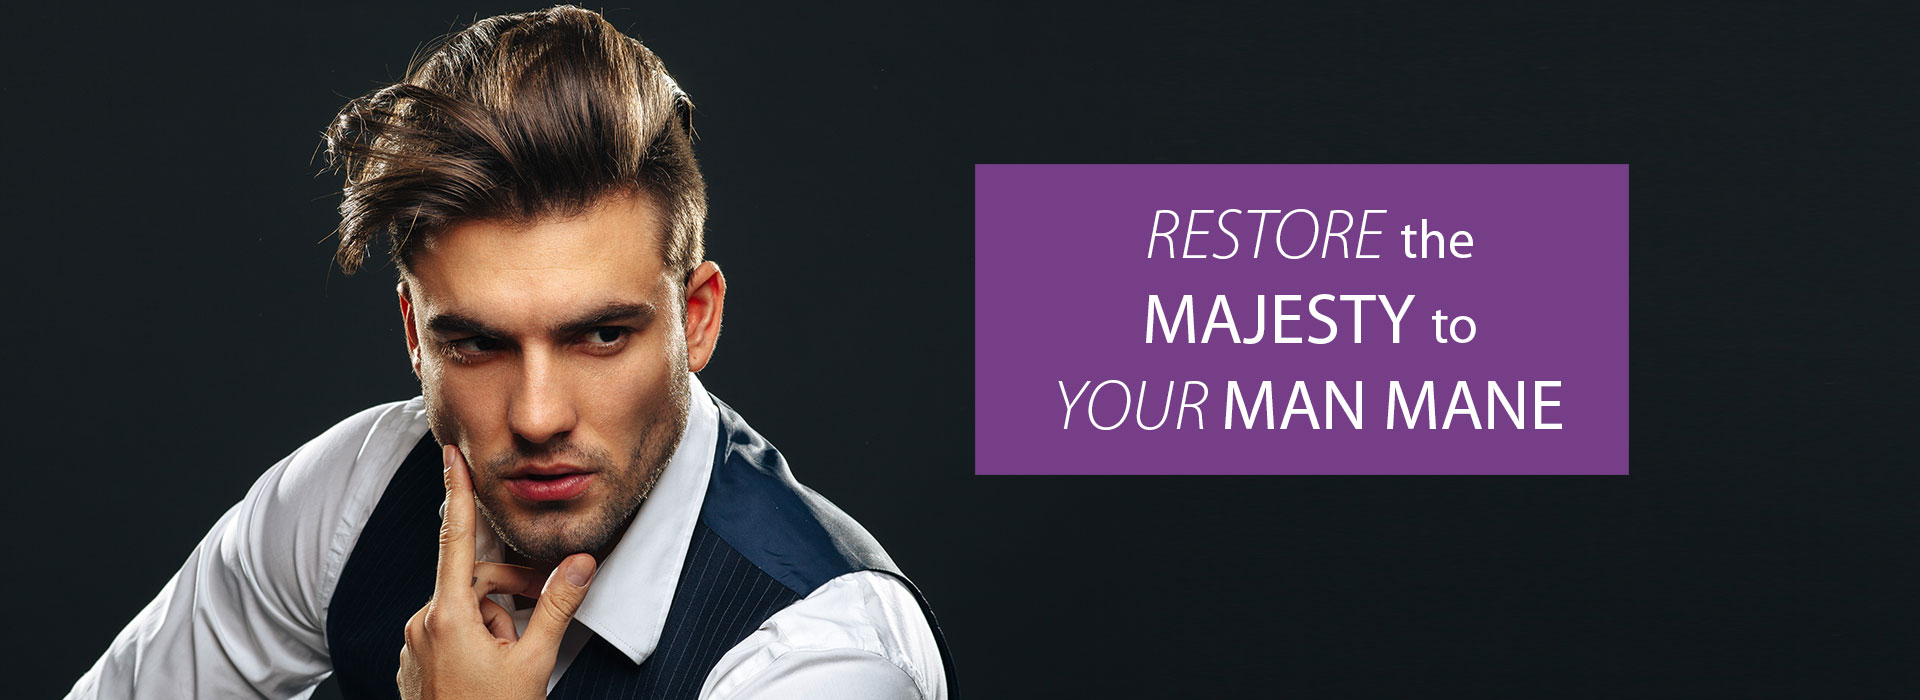 non-surgical-hair-restoration--for-men-prp-treatment-lake-norman-aesthetics-concierge-med-spa-laser-center-mooresville-nc-28117